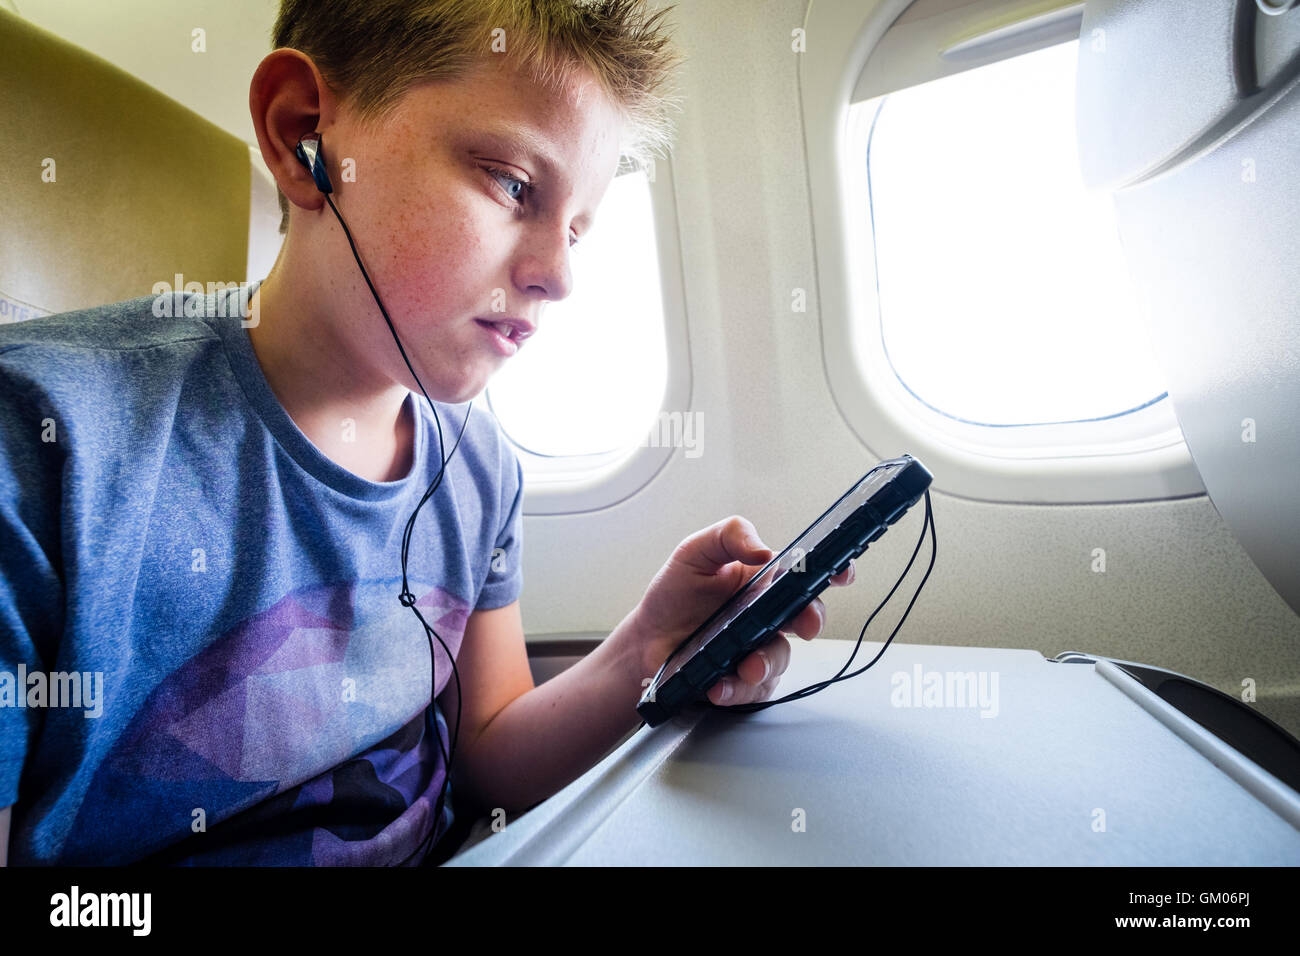 A teenage boy using his mobile phone during the flight on a plane to listen to music - Stock Image